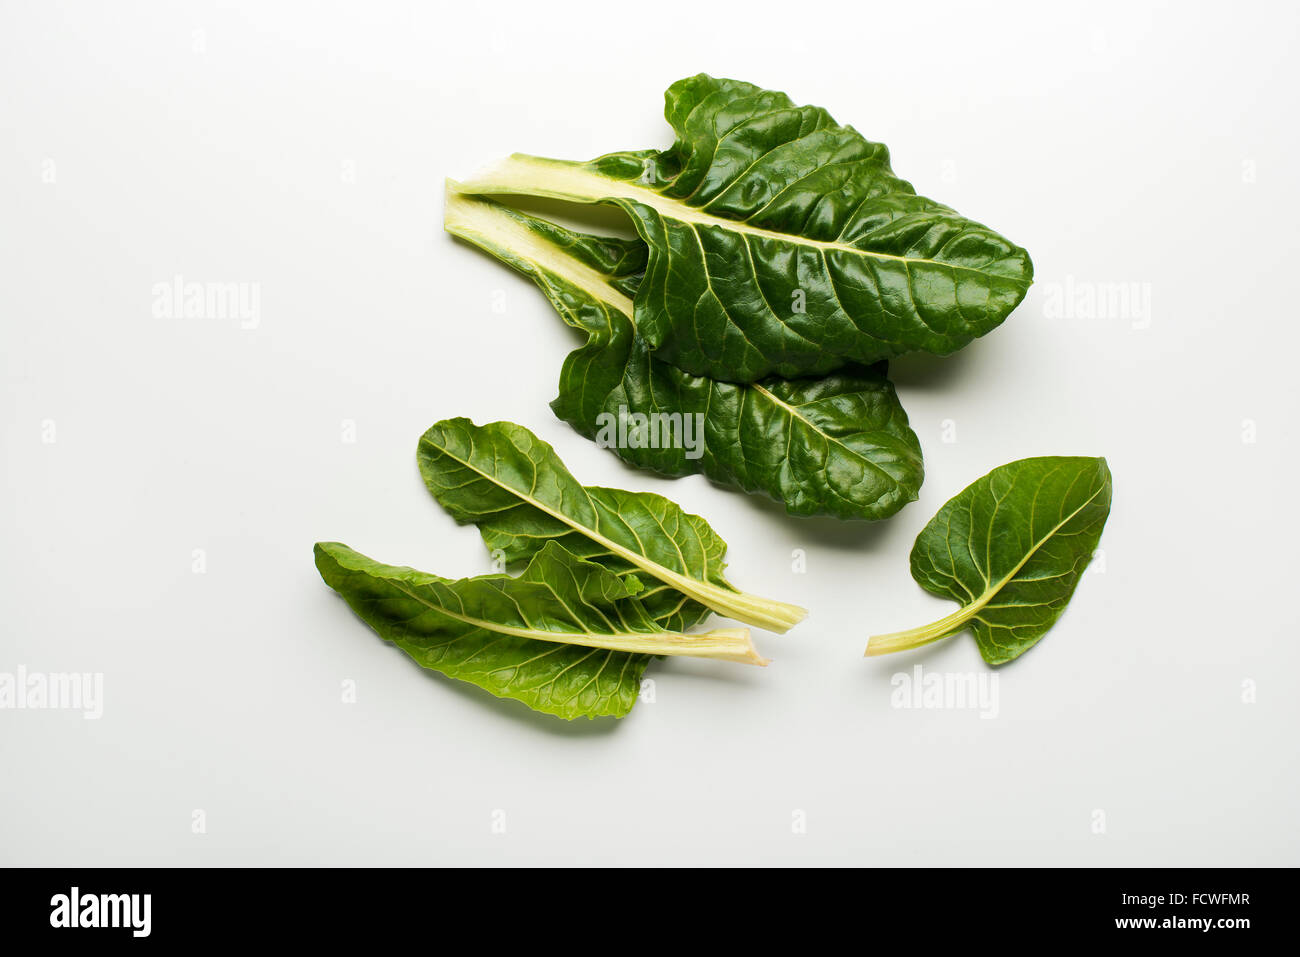 Fresh swiss chard leaves isolated on a white background. - Stock Image